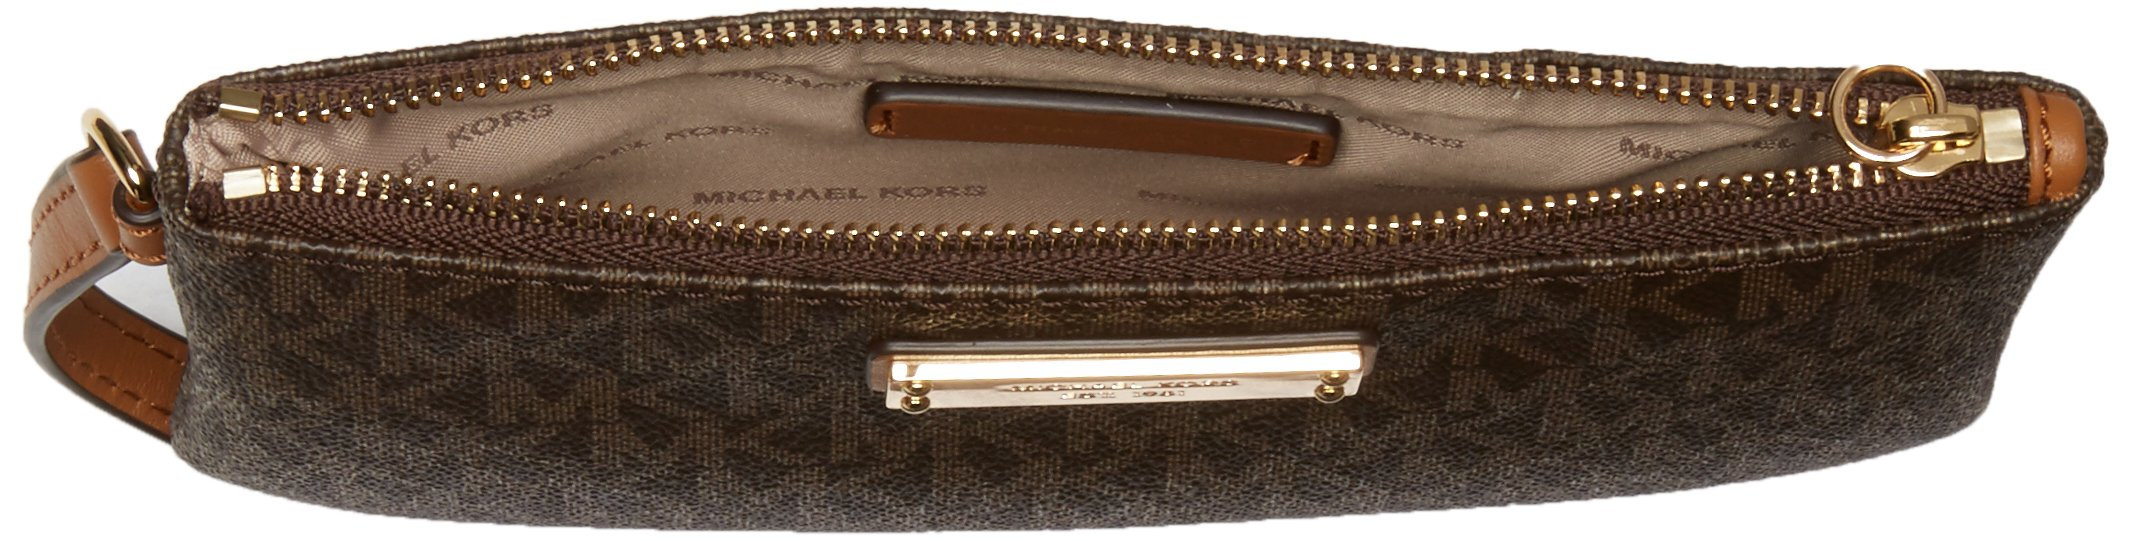 f3eb9a306363 MICHAEL Michael Kors Signature Jet Set Item Medium Wristlet ...